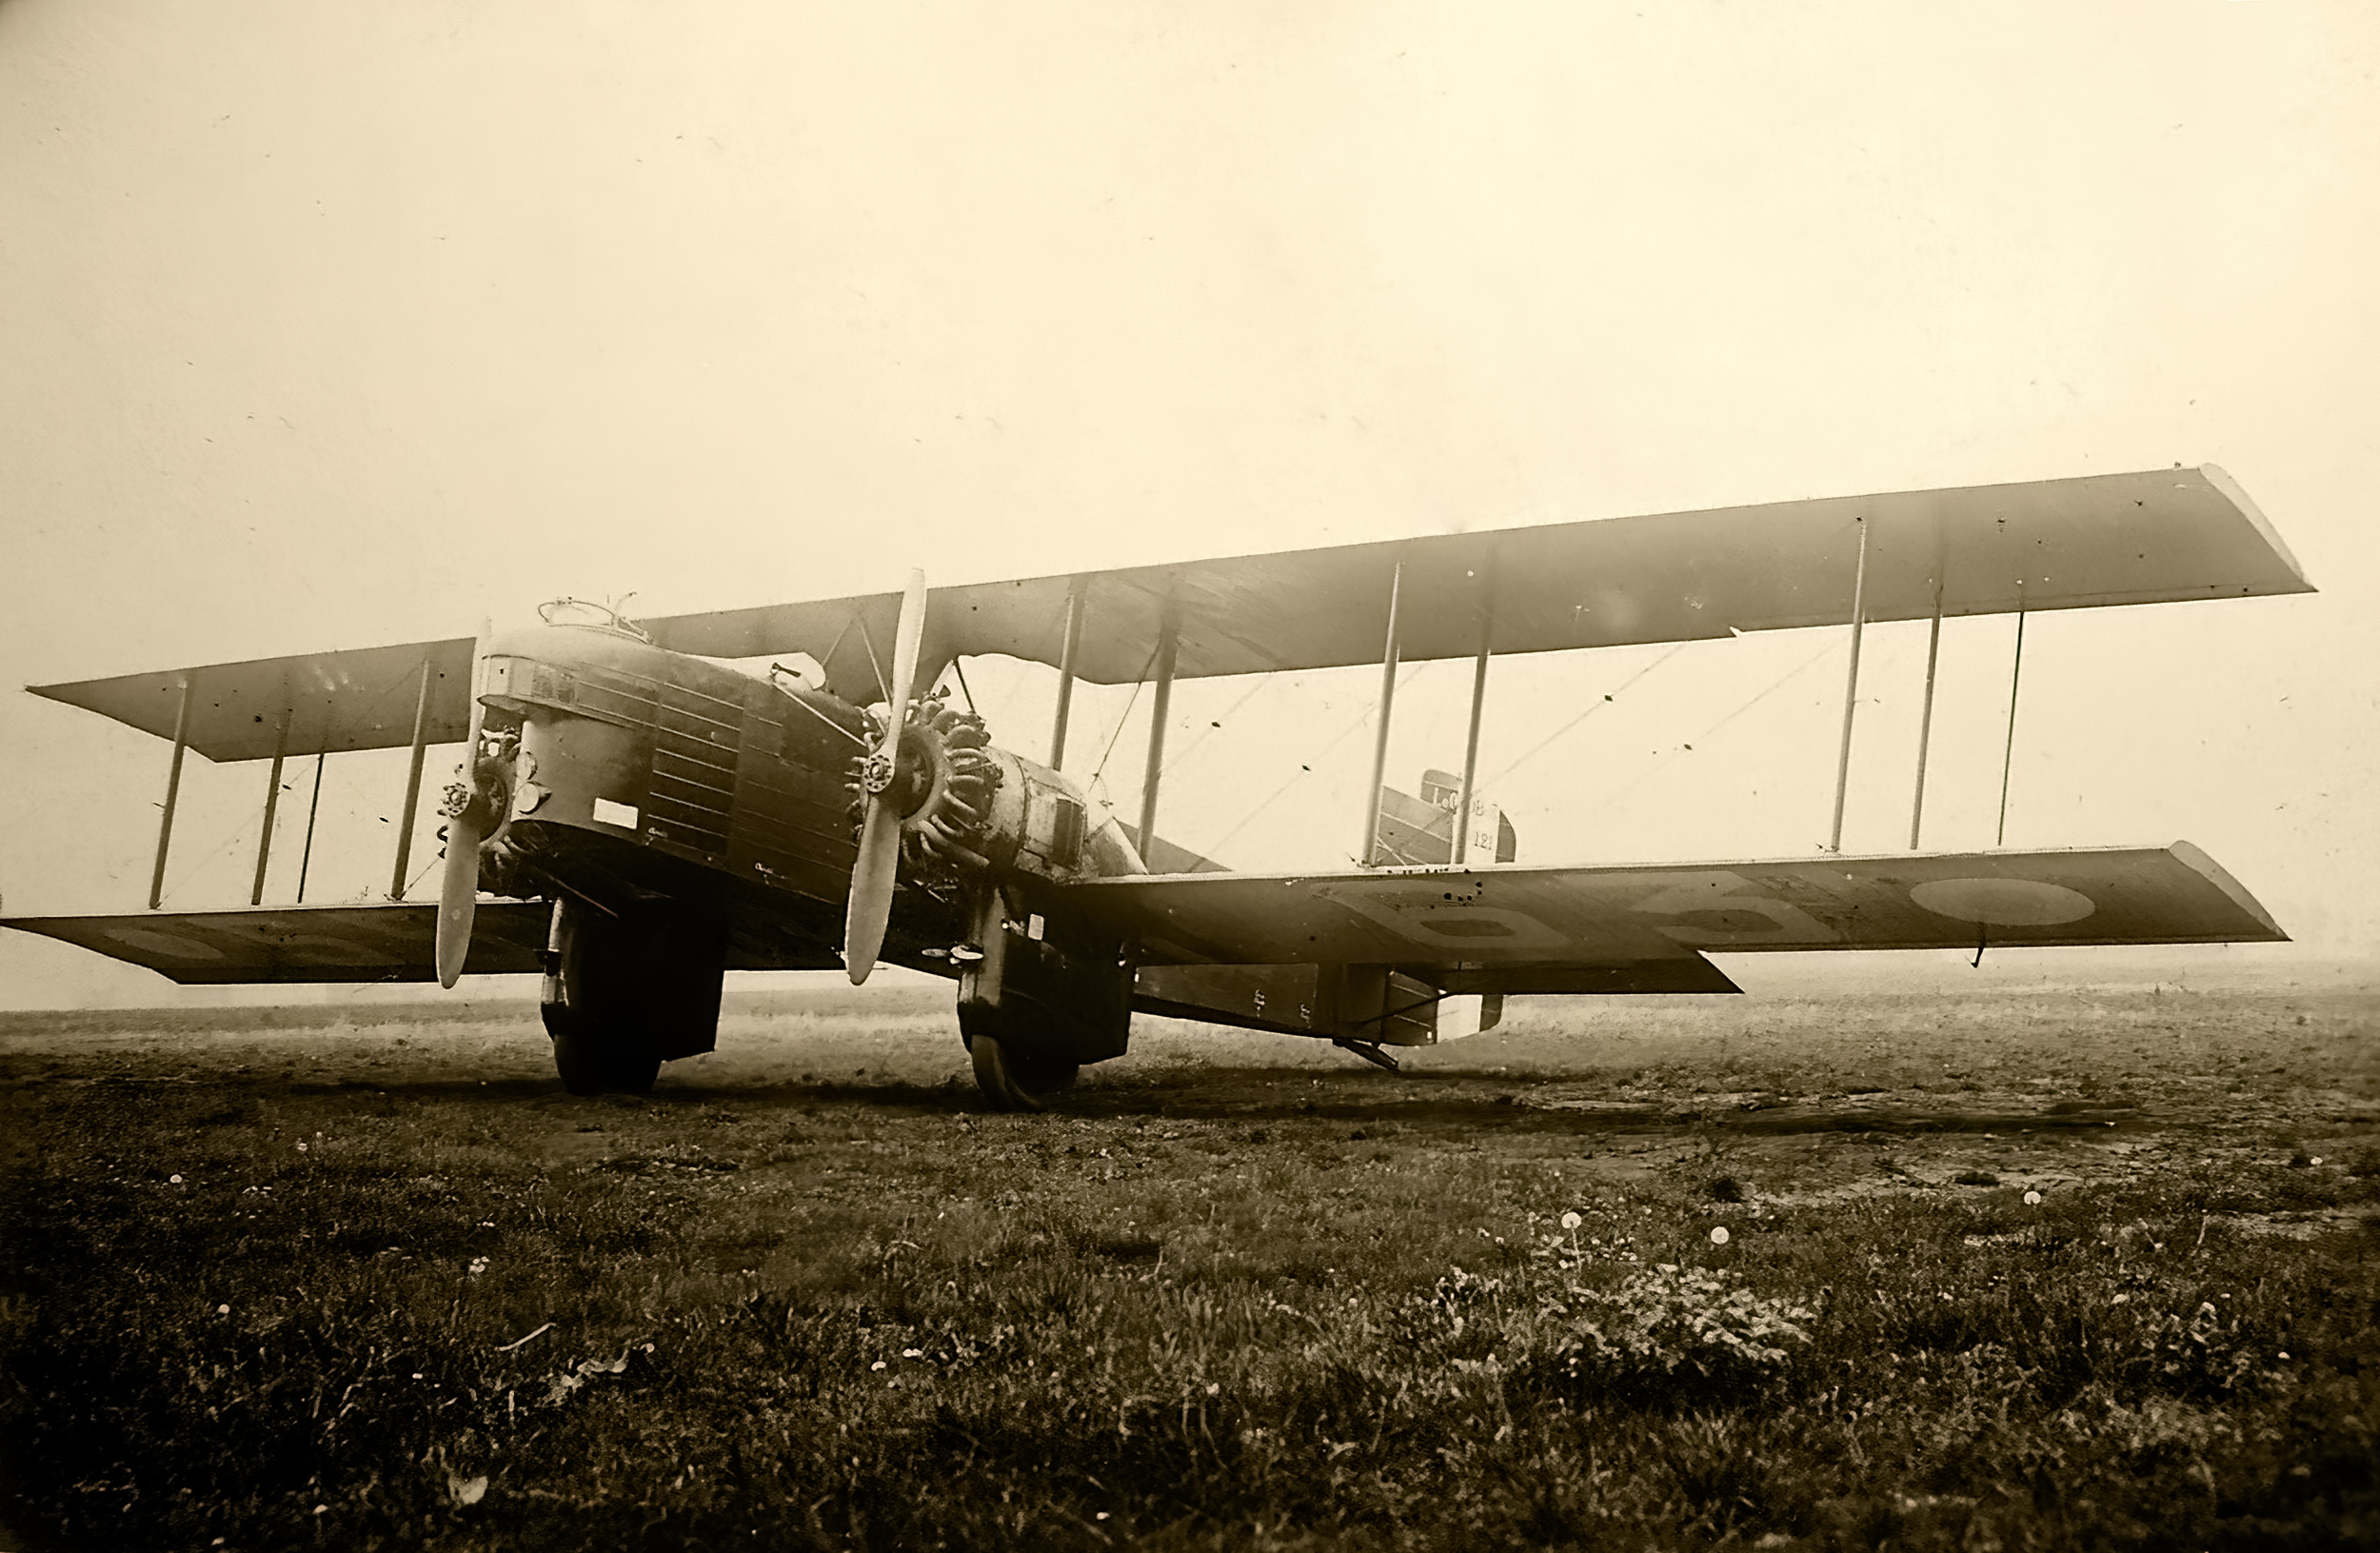 French Airforce Liore et Olivier LeO 20 France 1928 wiki 01